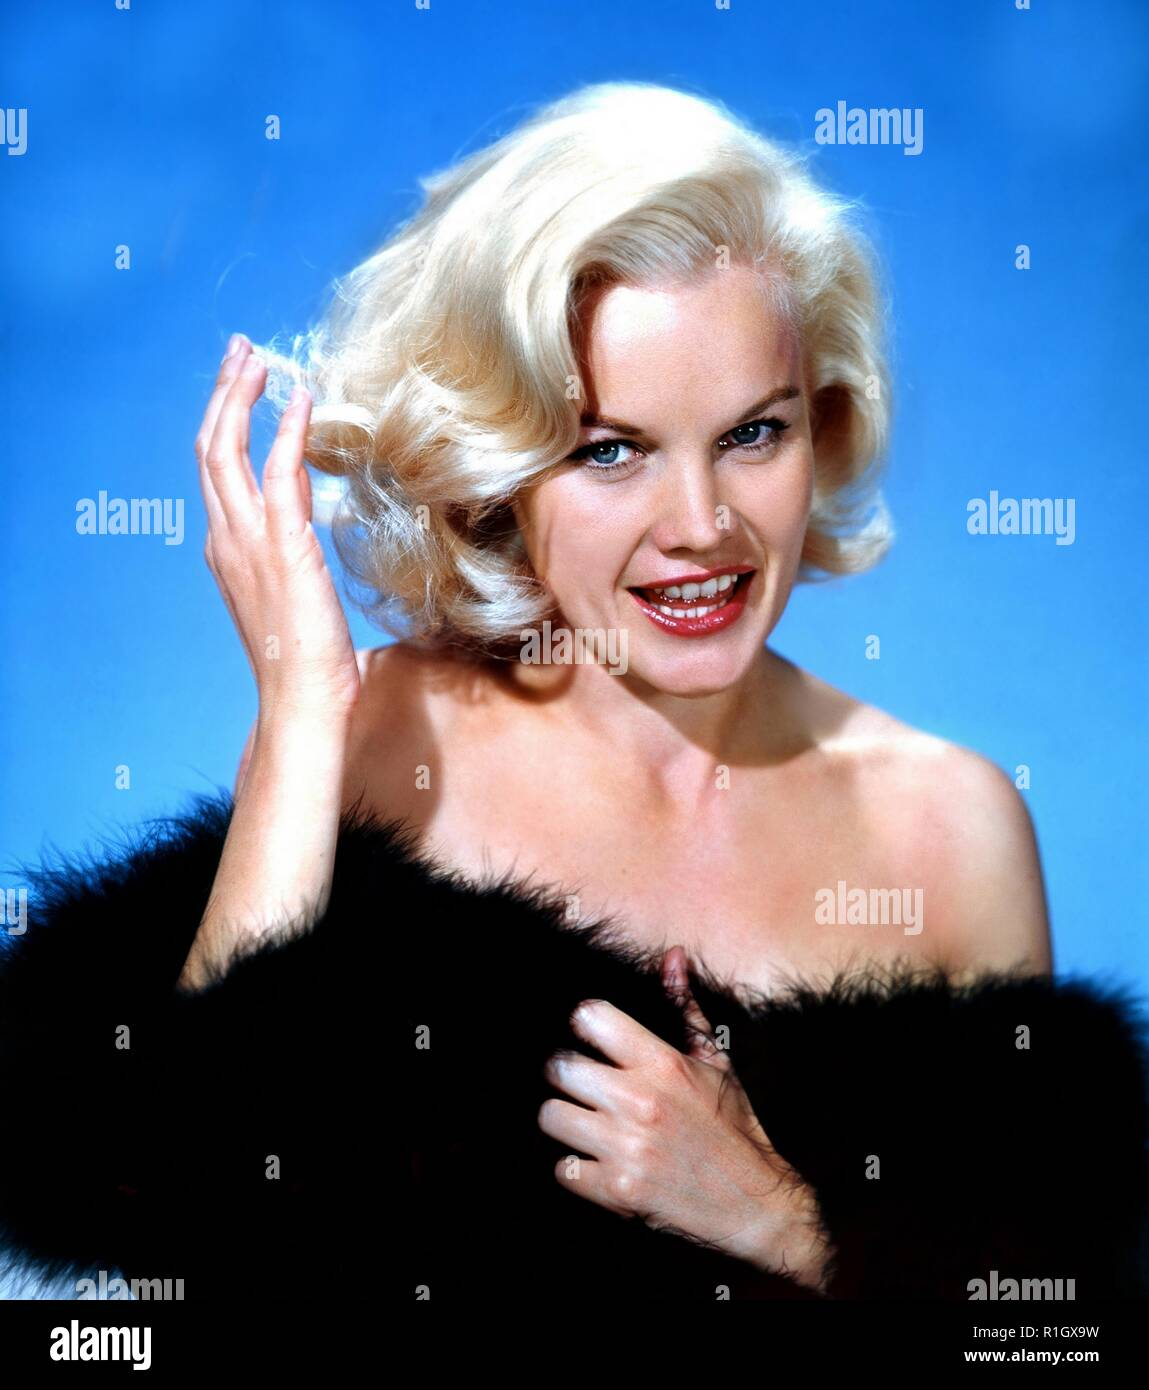 Carroll Baker (born May 28, 1931) is a retired American actress of film, stage, and television. Throughout the 1950s and 1960s, Baker's range of roles from naive ingénues to brash and flamboyant women established her as both a serious dramatic actress and a pin-up. After studying under Lee Strasberg at the Actors Studio, Baker began performing on Broadway in 1954, where she was recruited by director Elia Kazan to play the lead in the film of Tennessee Williams's Baby Doll (1956). Her role in the film as a sexually repressed Southern bride earned her BAFTA and Academy Award nominations for Best - Stock Image